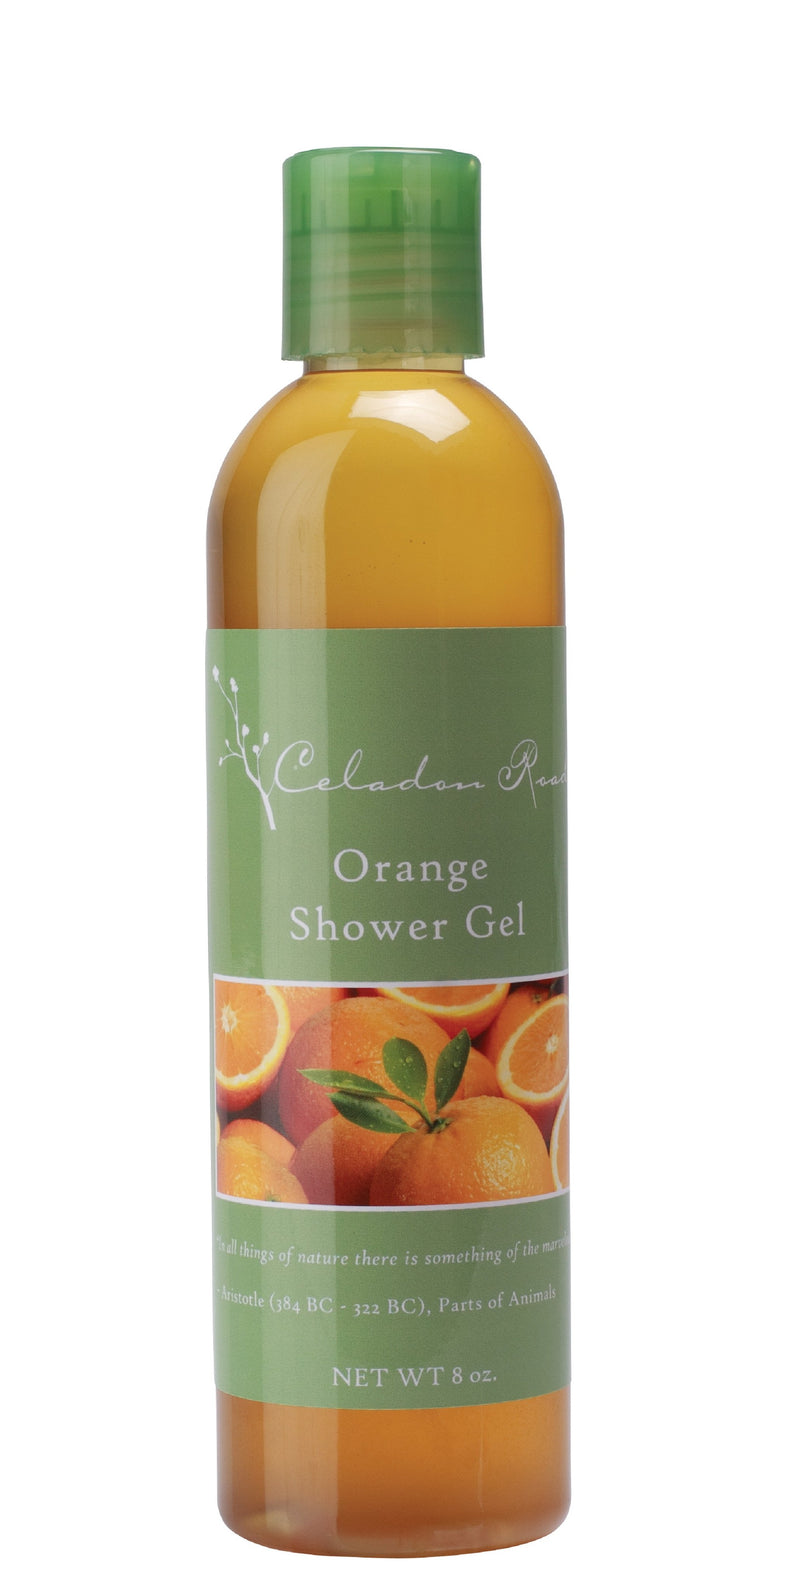 Orange Shower Gel- Celadon Road- www.celadonroad.com